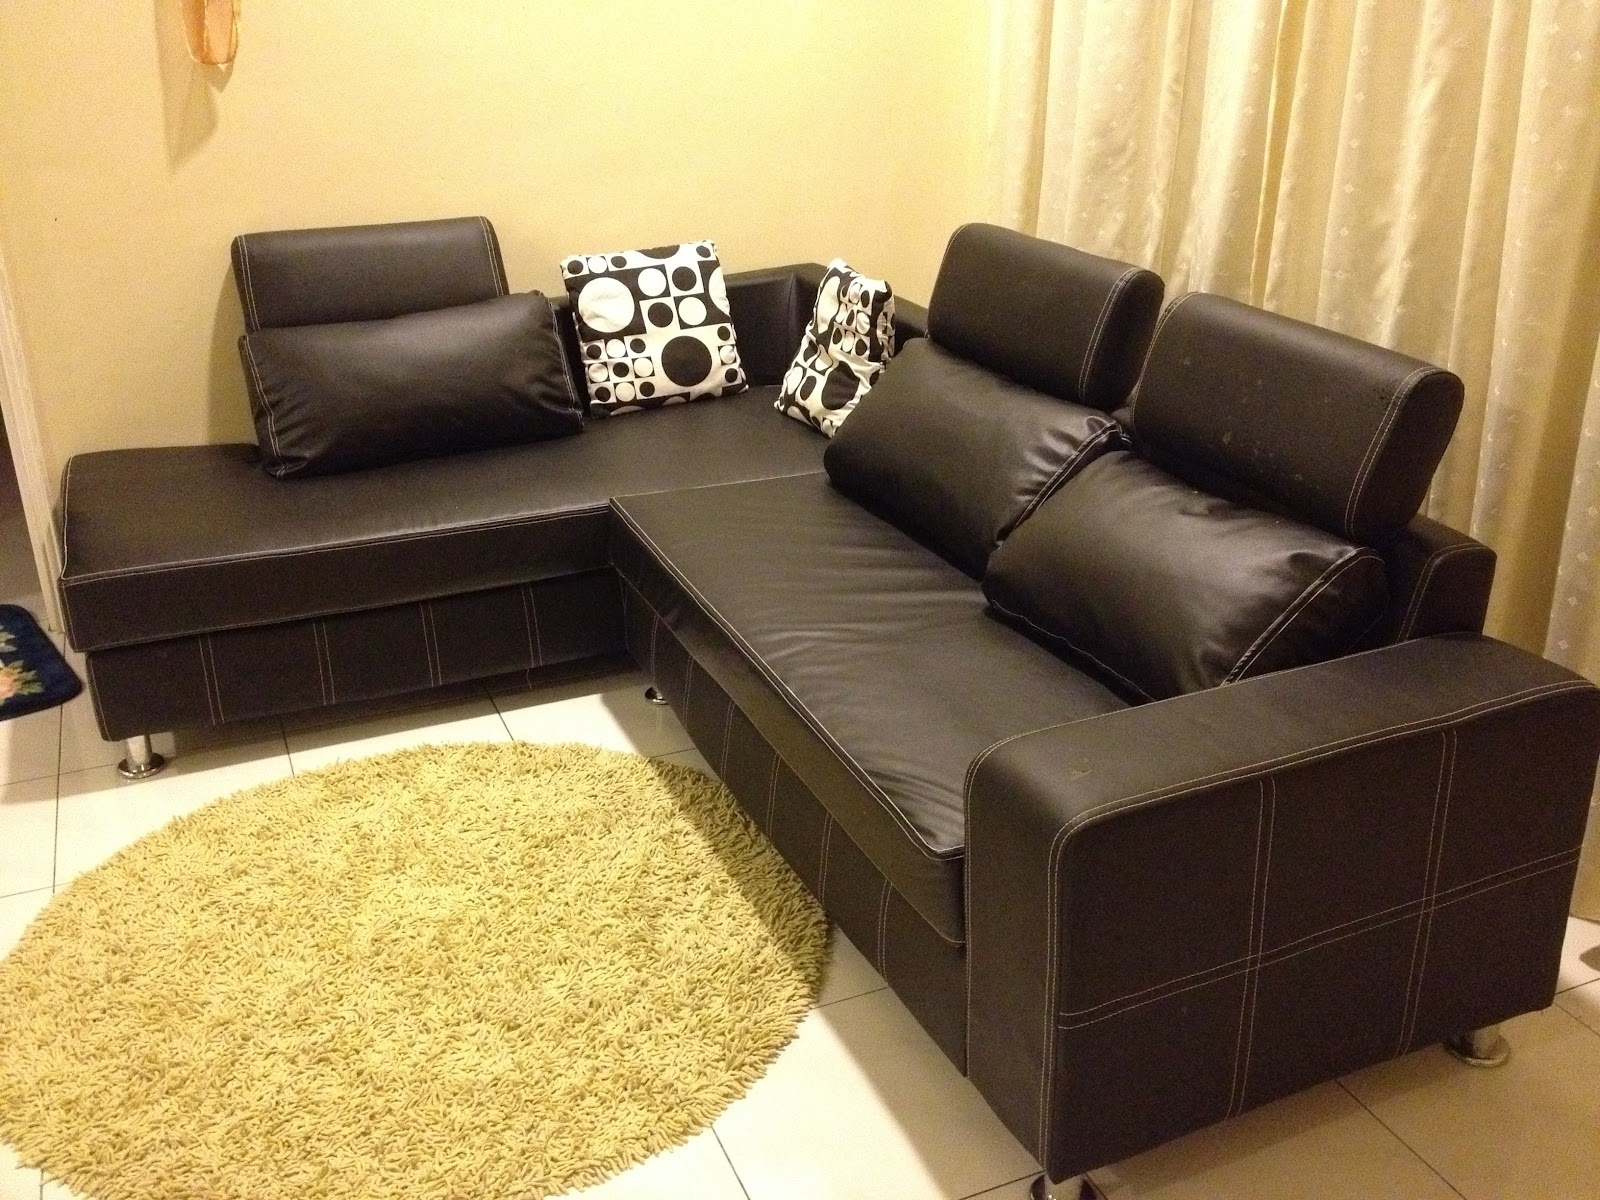 Sectional Sofas In Philippines Intended For Well Known Awesome Leather Sofa For Sale Philippines – Mediasupload (View 17 of 20)